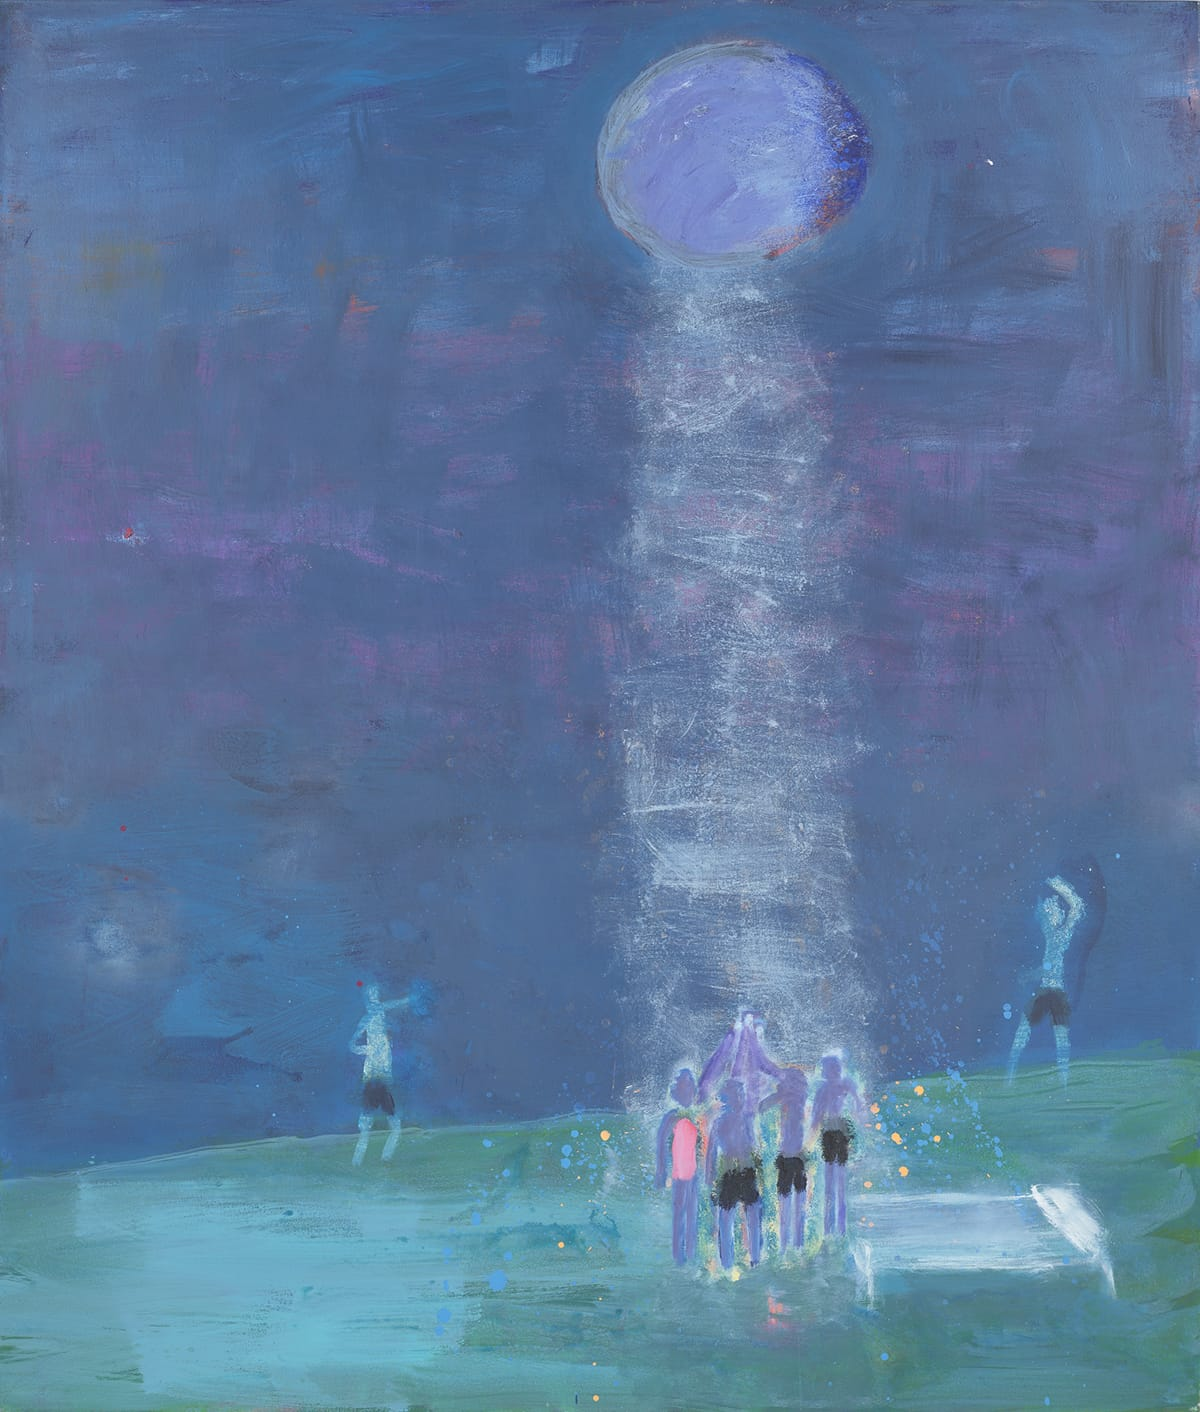 A small grouping of abstract figures wearing swimsuits stand beneath a small, blue celestial body connected by iridescent light amidst atmospheric color planes of blues, greens, and purples.